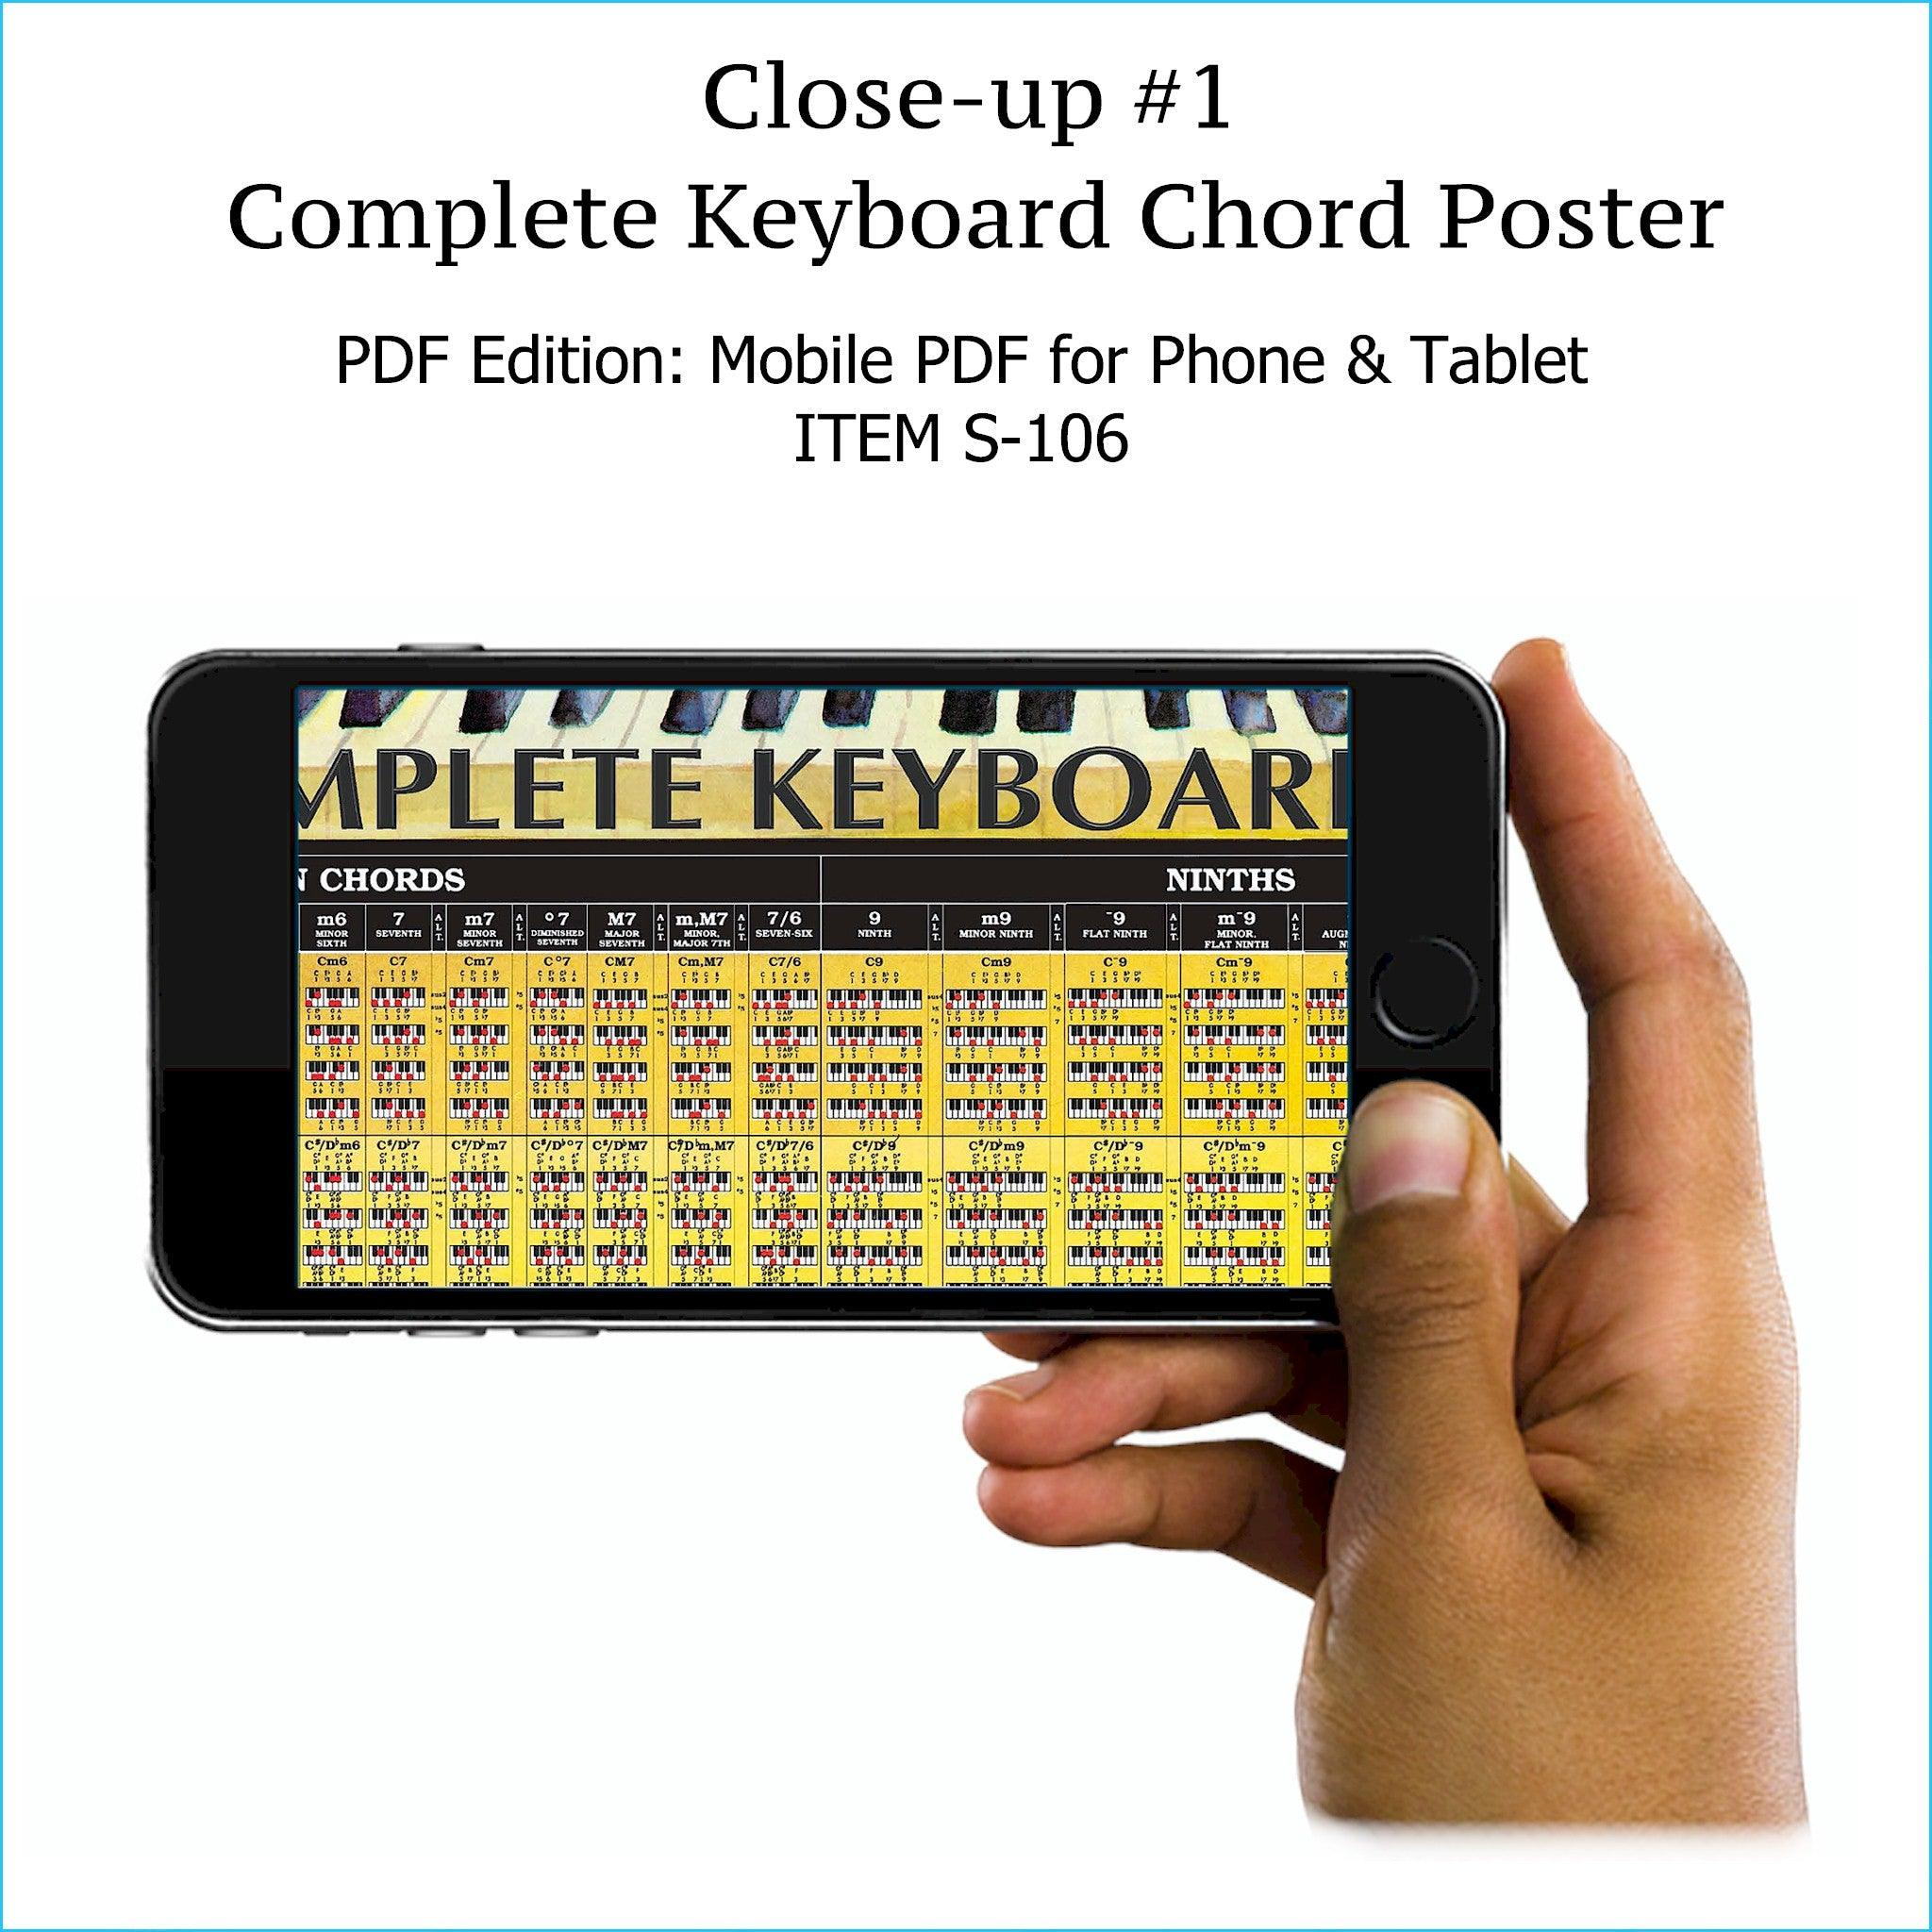 Item S-106: Complete Piano/Keyboard Chord Chart on a SINGLE SCREEN. Zoom In or Out Like a Google Map. Comes with FREE Musical Instruments Poster (S-120). World's ONLY Complete Keyboard Chord Chart. Printable.